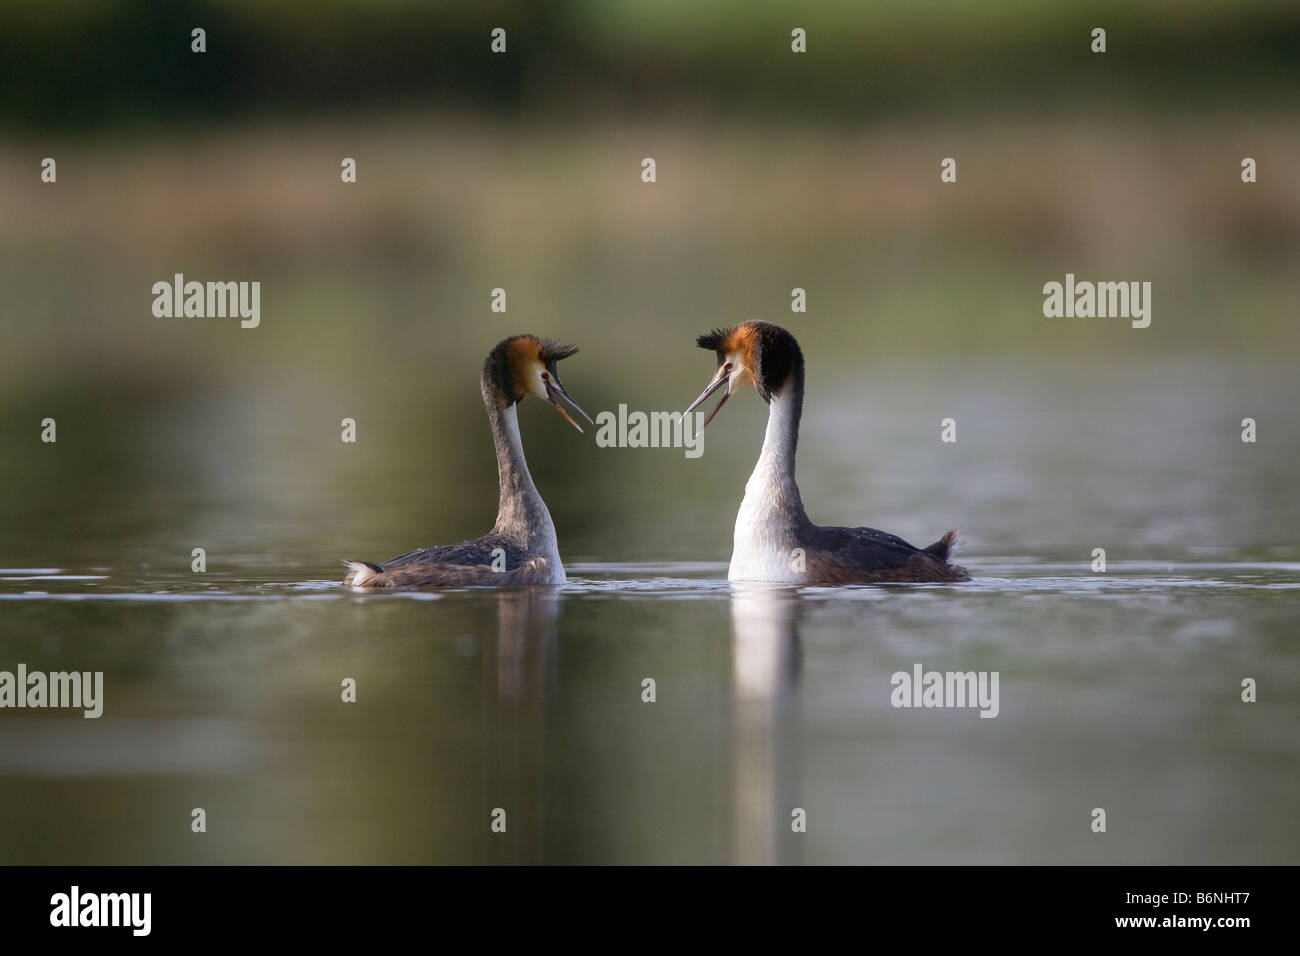 2 adults face to face with an attitude of courtship display Stock Photo